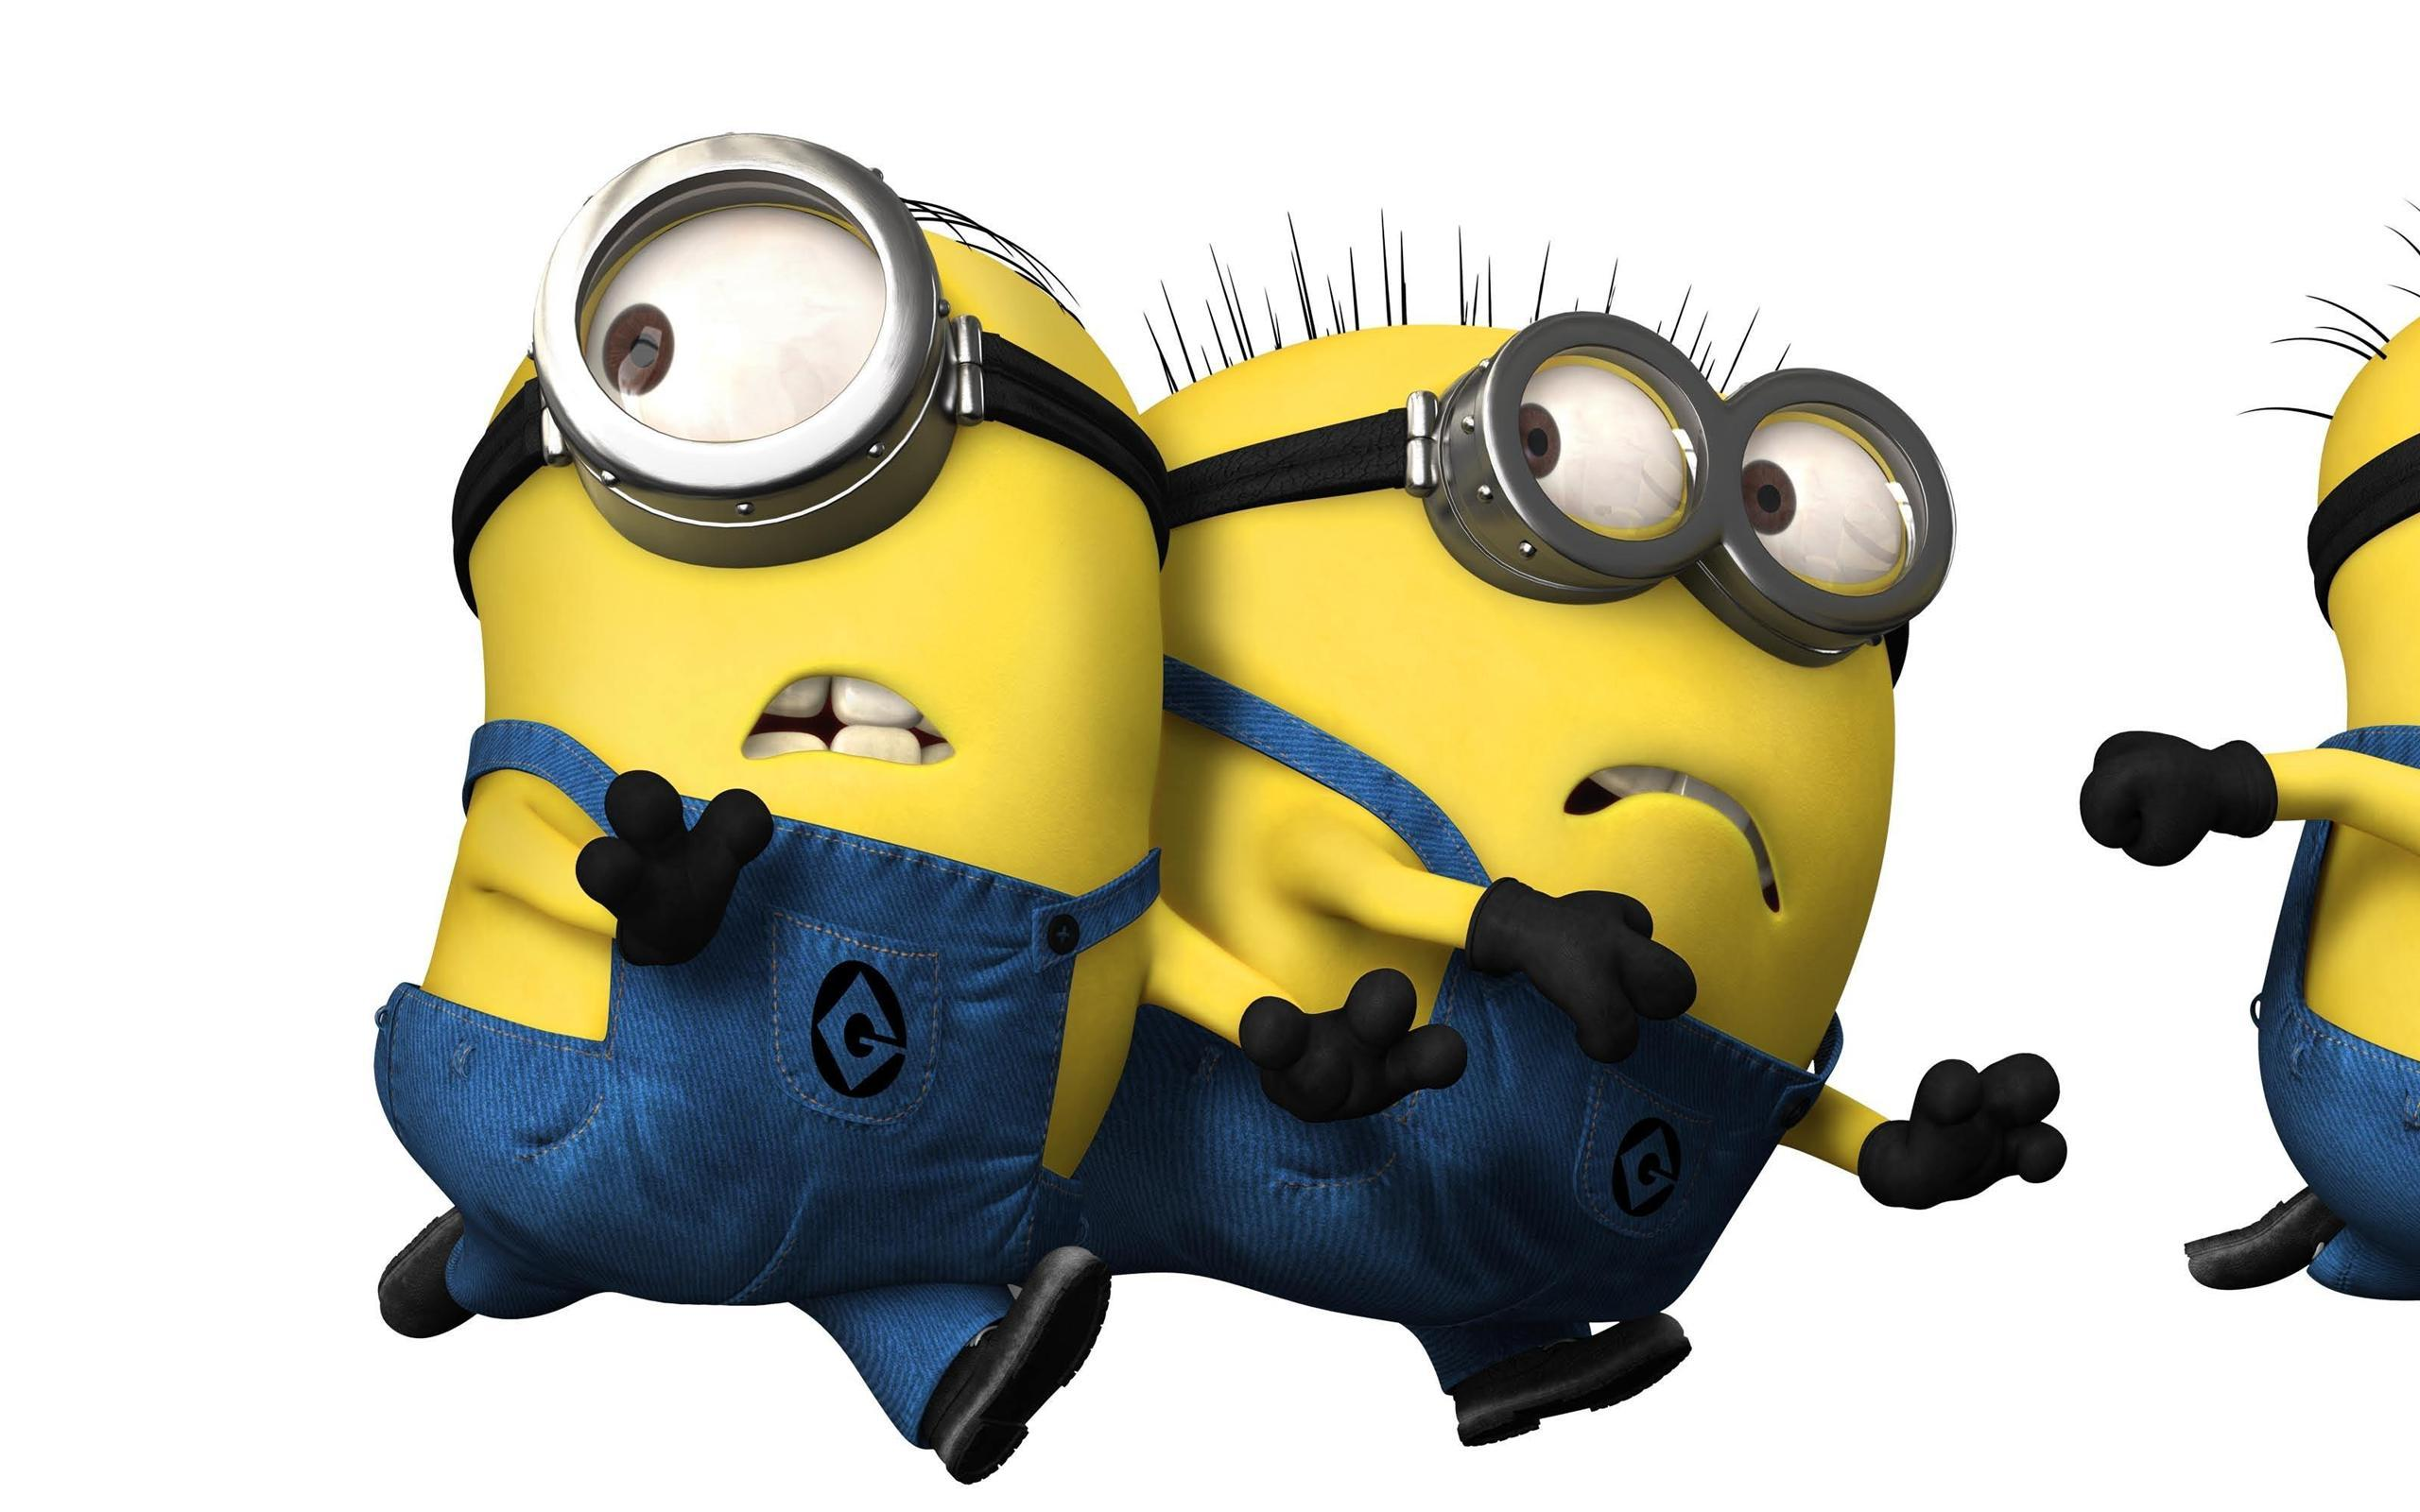 Despicable me minions wallpapers wallpaper cave - Despicable me minion screensaver ...